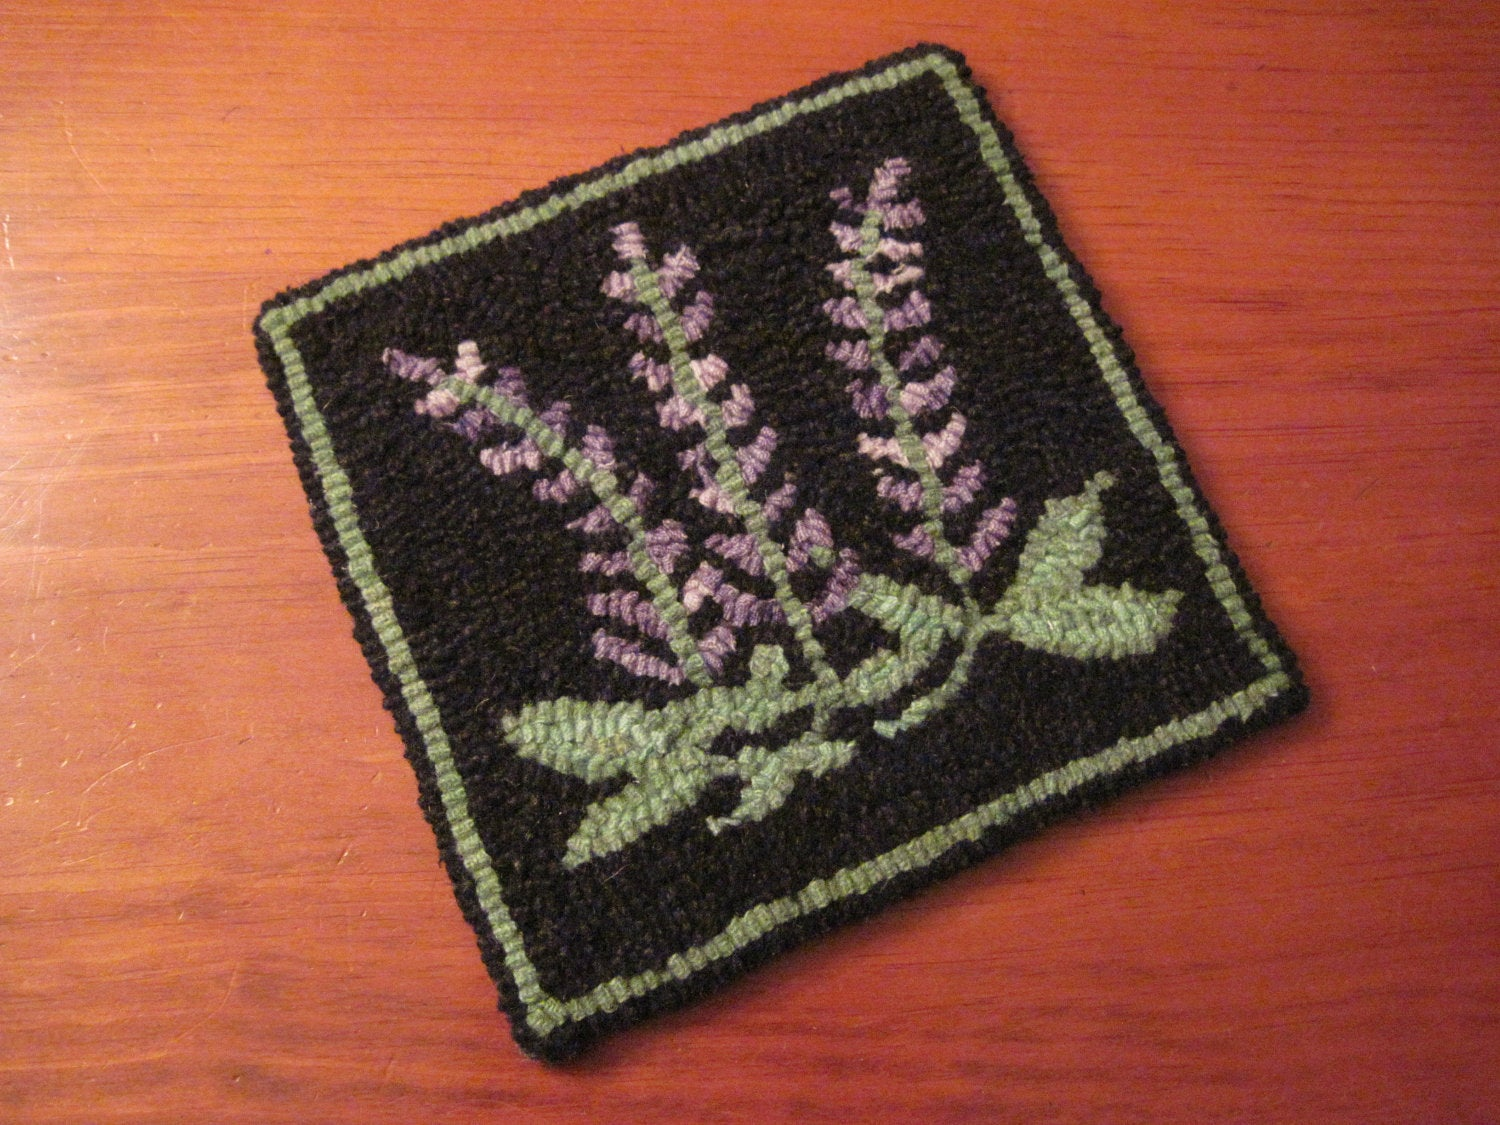 Rangeley Lupines Trivet Pattern Only 8 X 8 Hooked Rug Pattern Parris House Wool Works